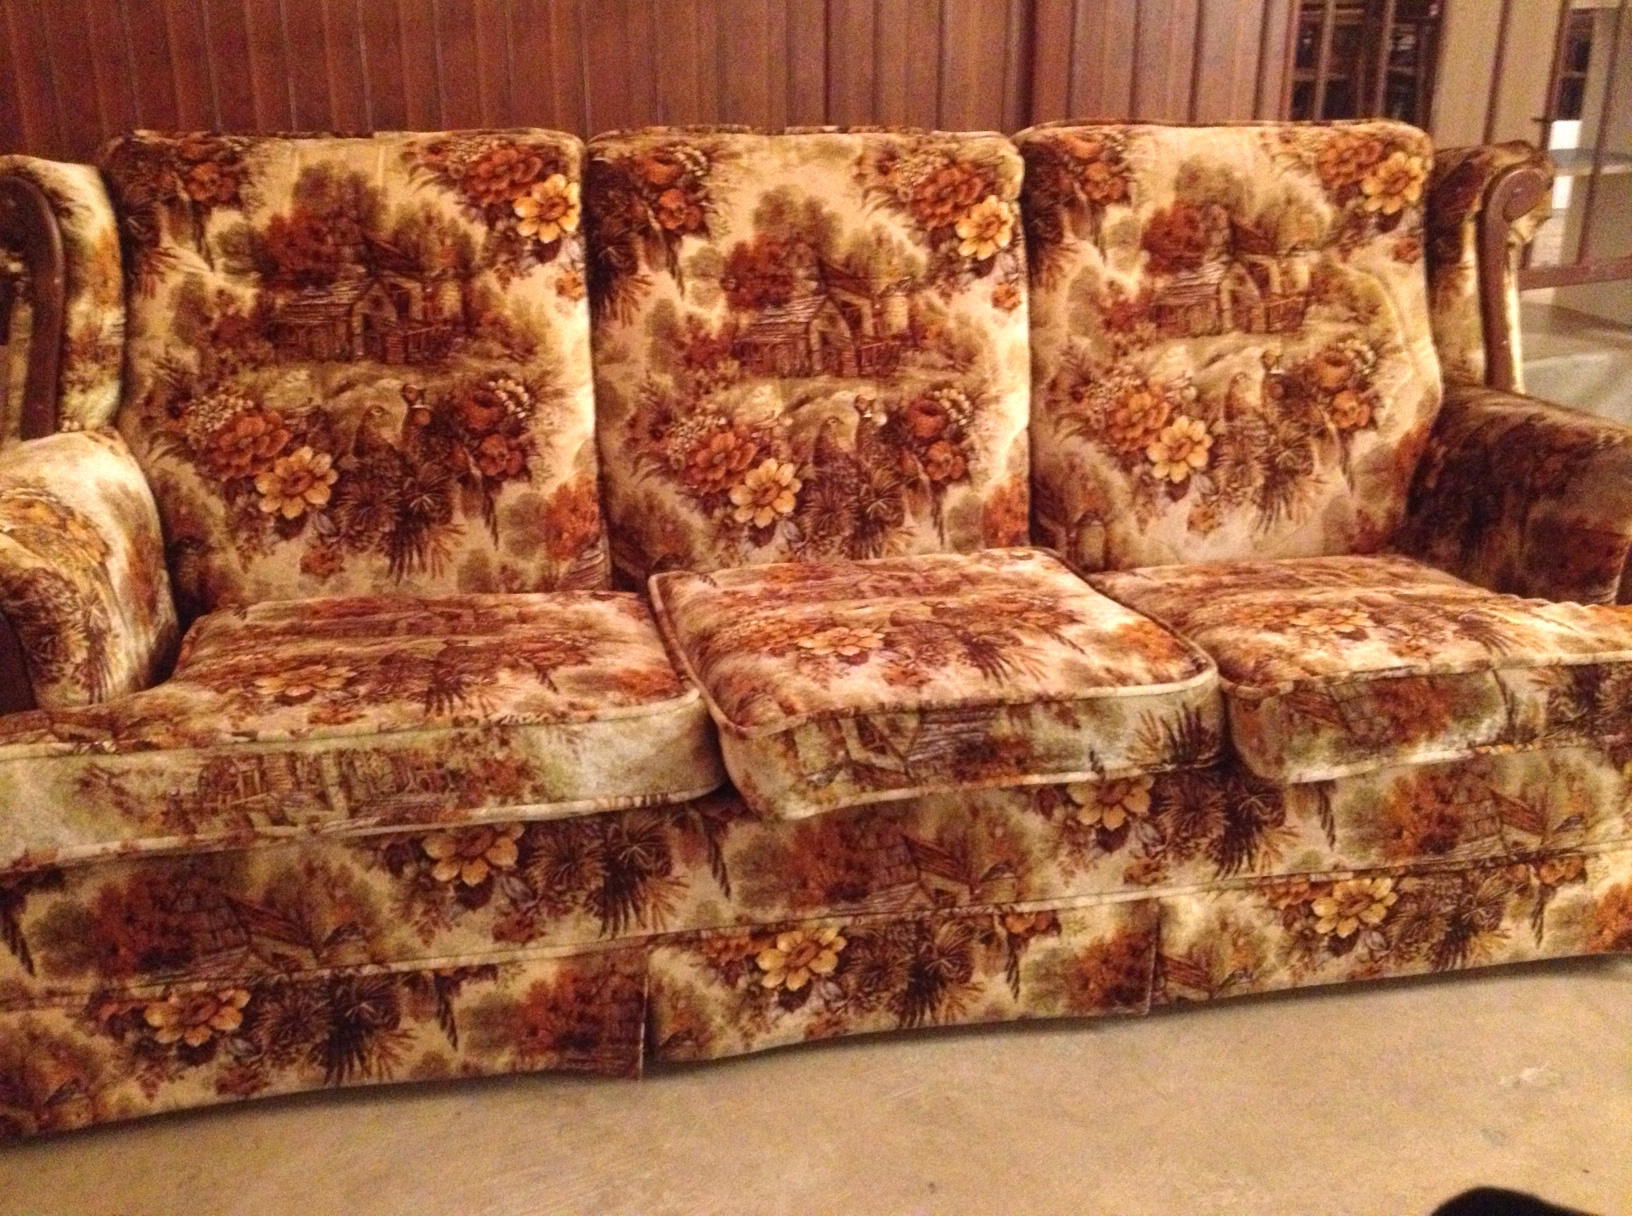 Gumtree Sofas For Sale East London Retro Sofa 80s | 80s Sofa Wooden Frame Wooden Thing